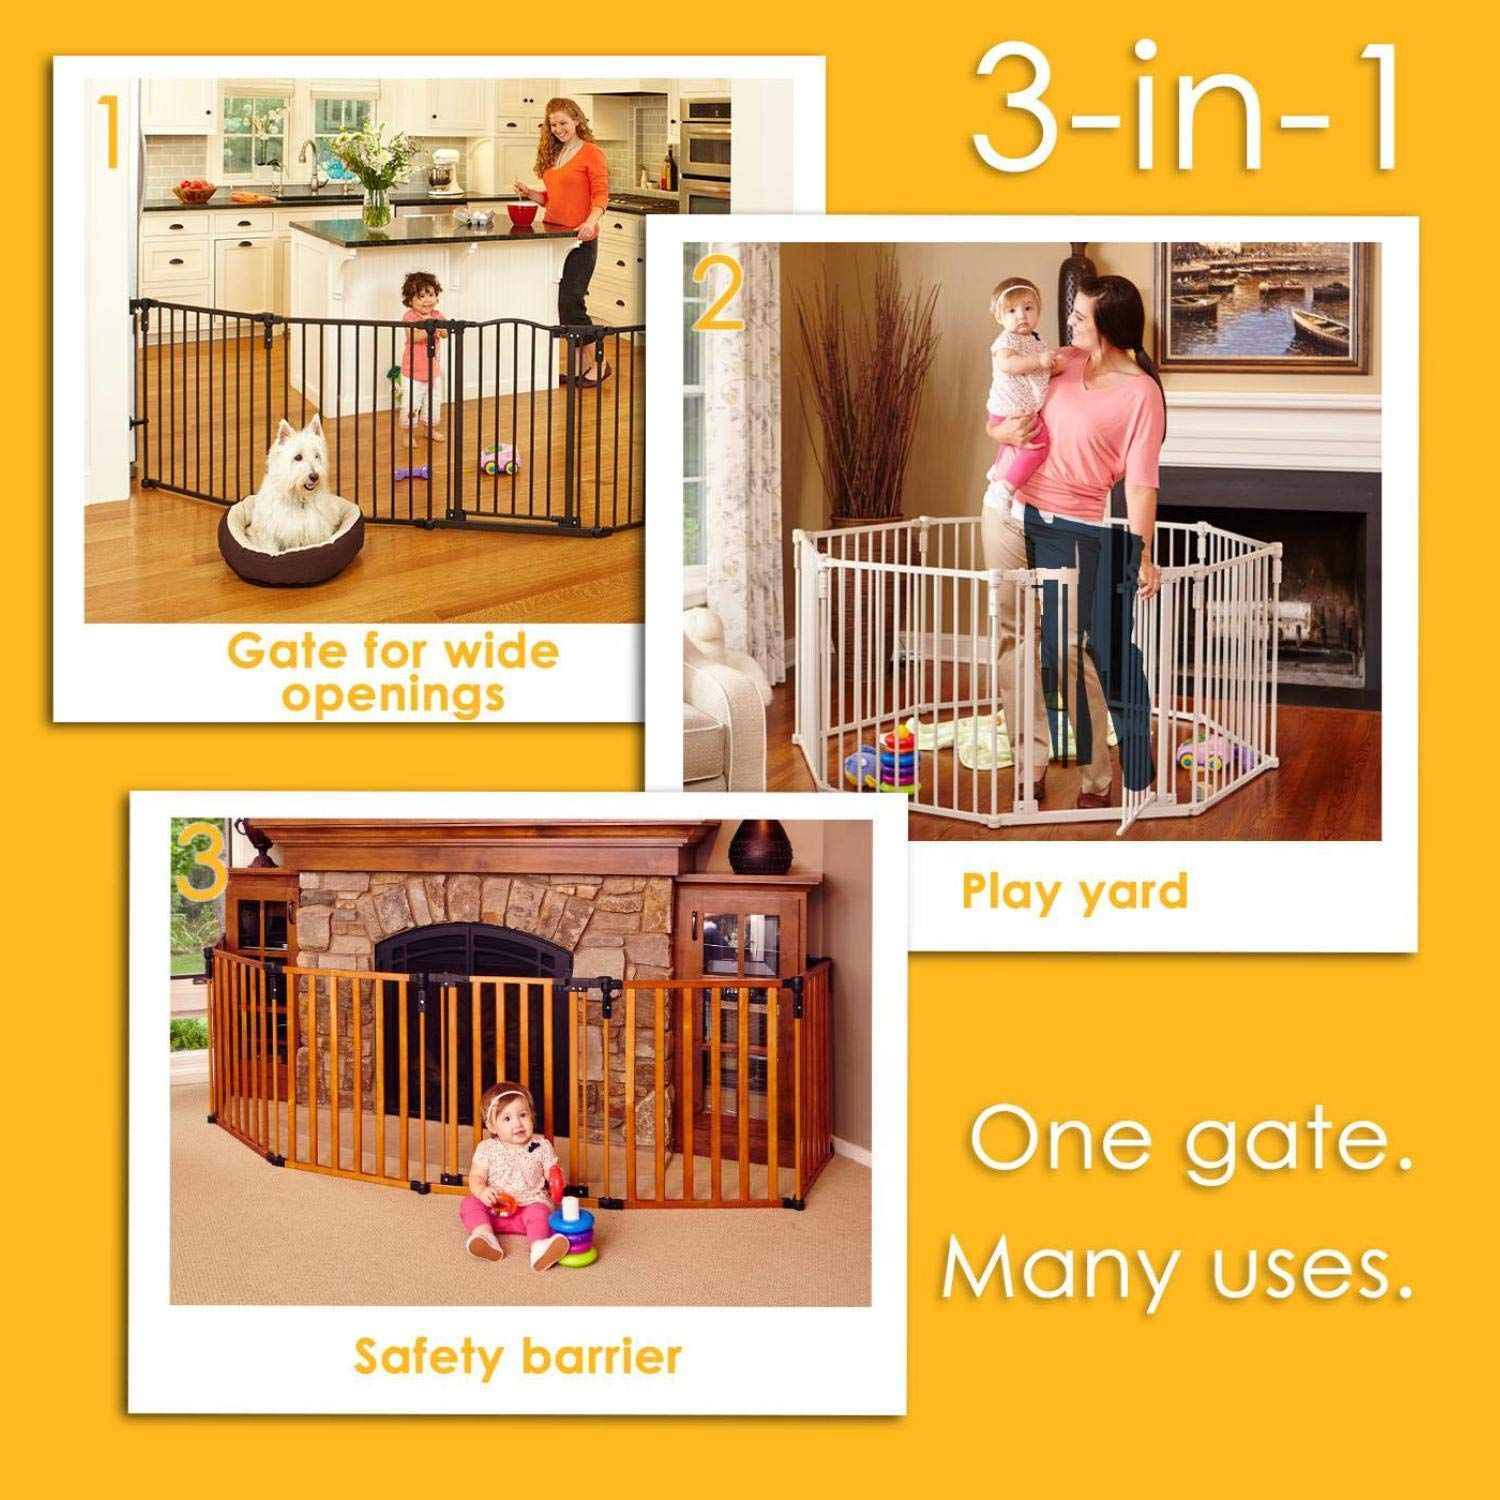 North States 3in1 Metal Superyard 144 Inches Long Play Yard Create An Extrawide Gate Or A Play Yard Hardware Mount Play Yard Extra Wide Baby Gate Baby Gates